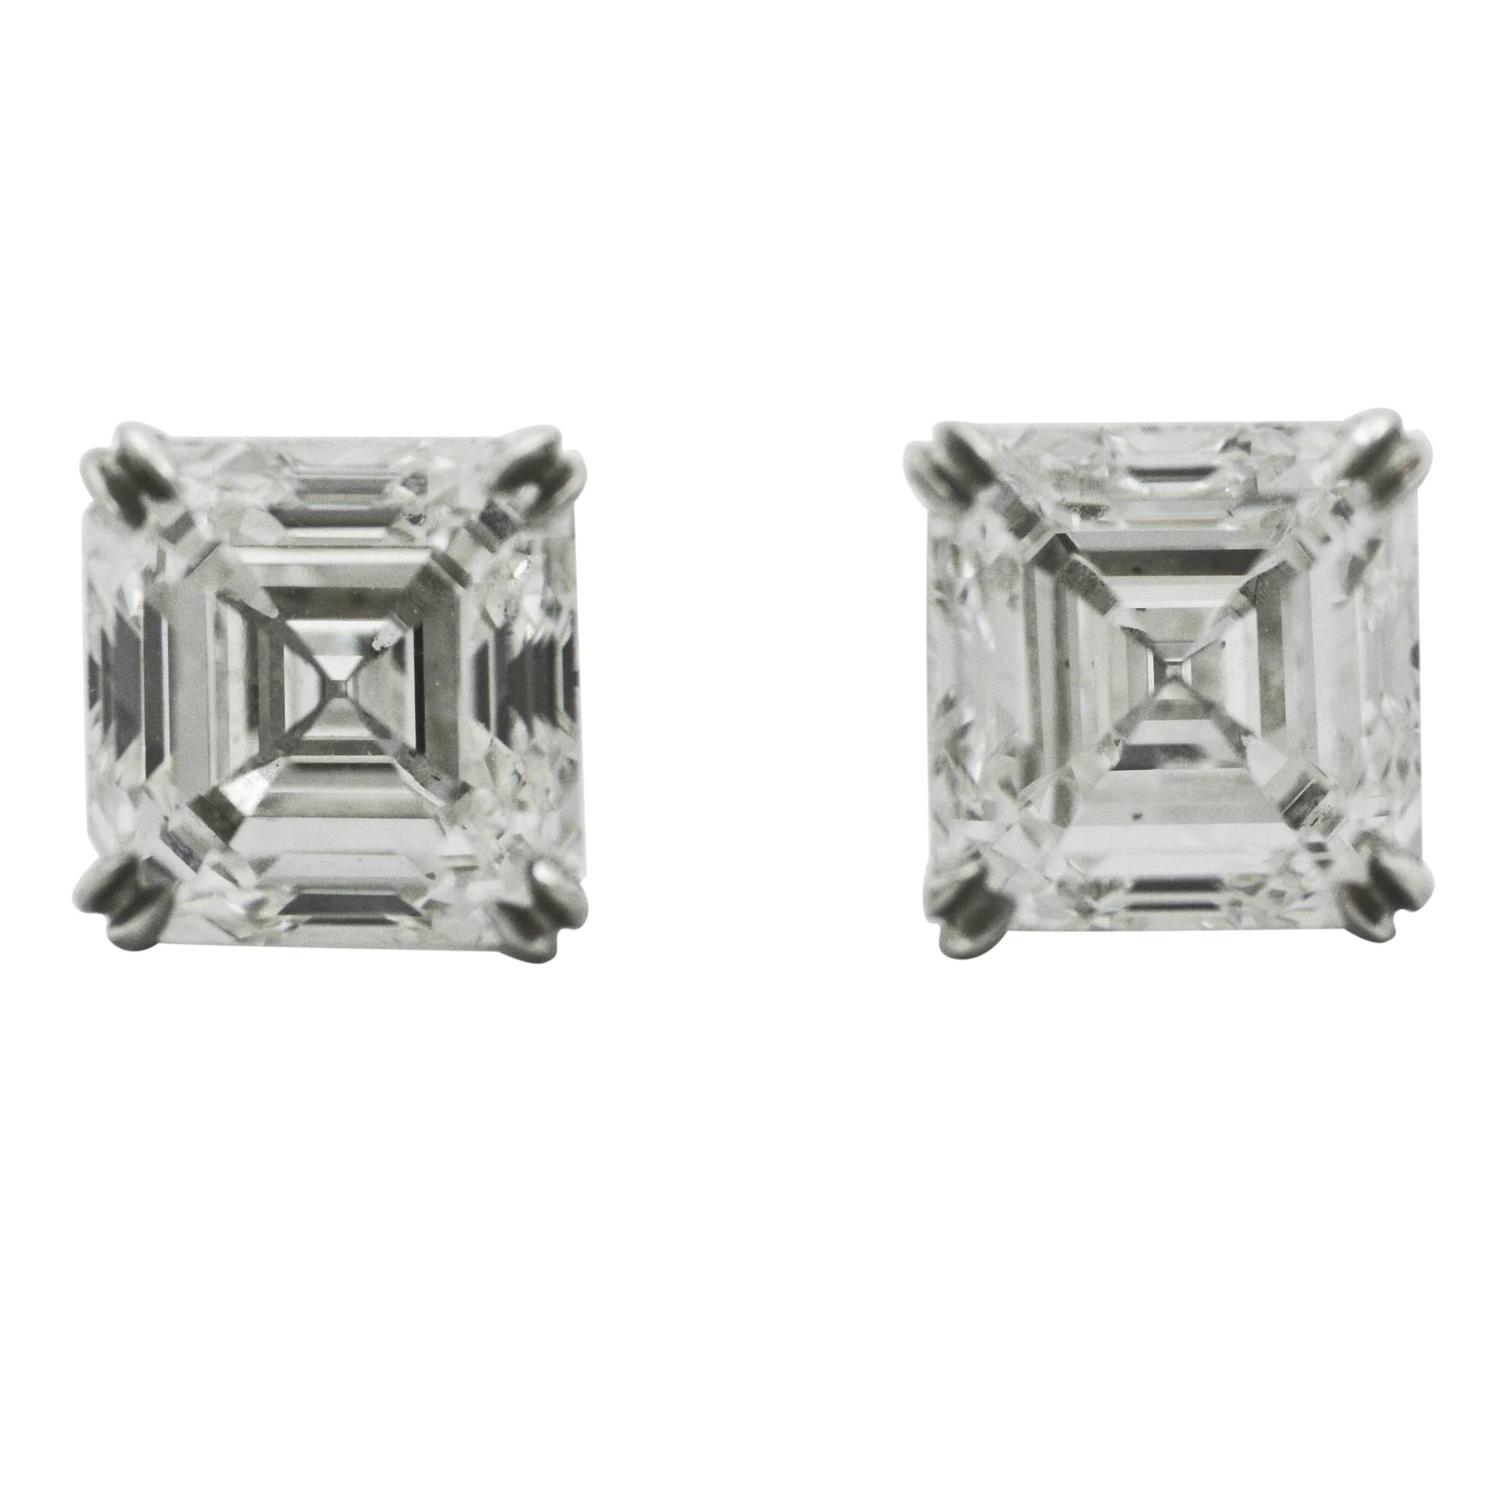 emerald cut stud earrings 5 02 carat emerald cut platinum stud earrings at 6387